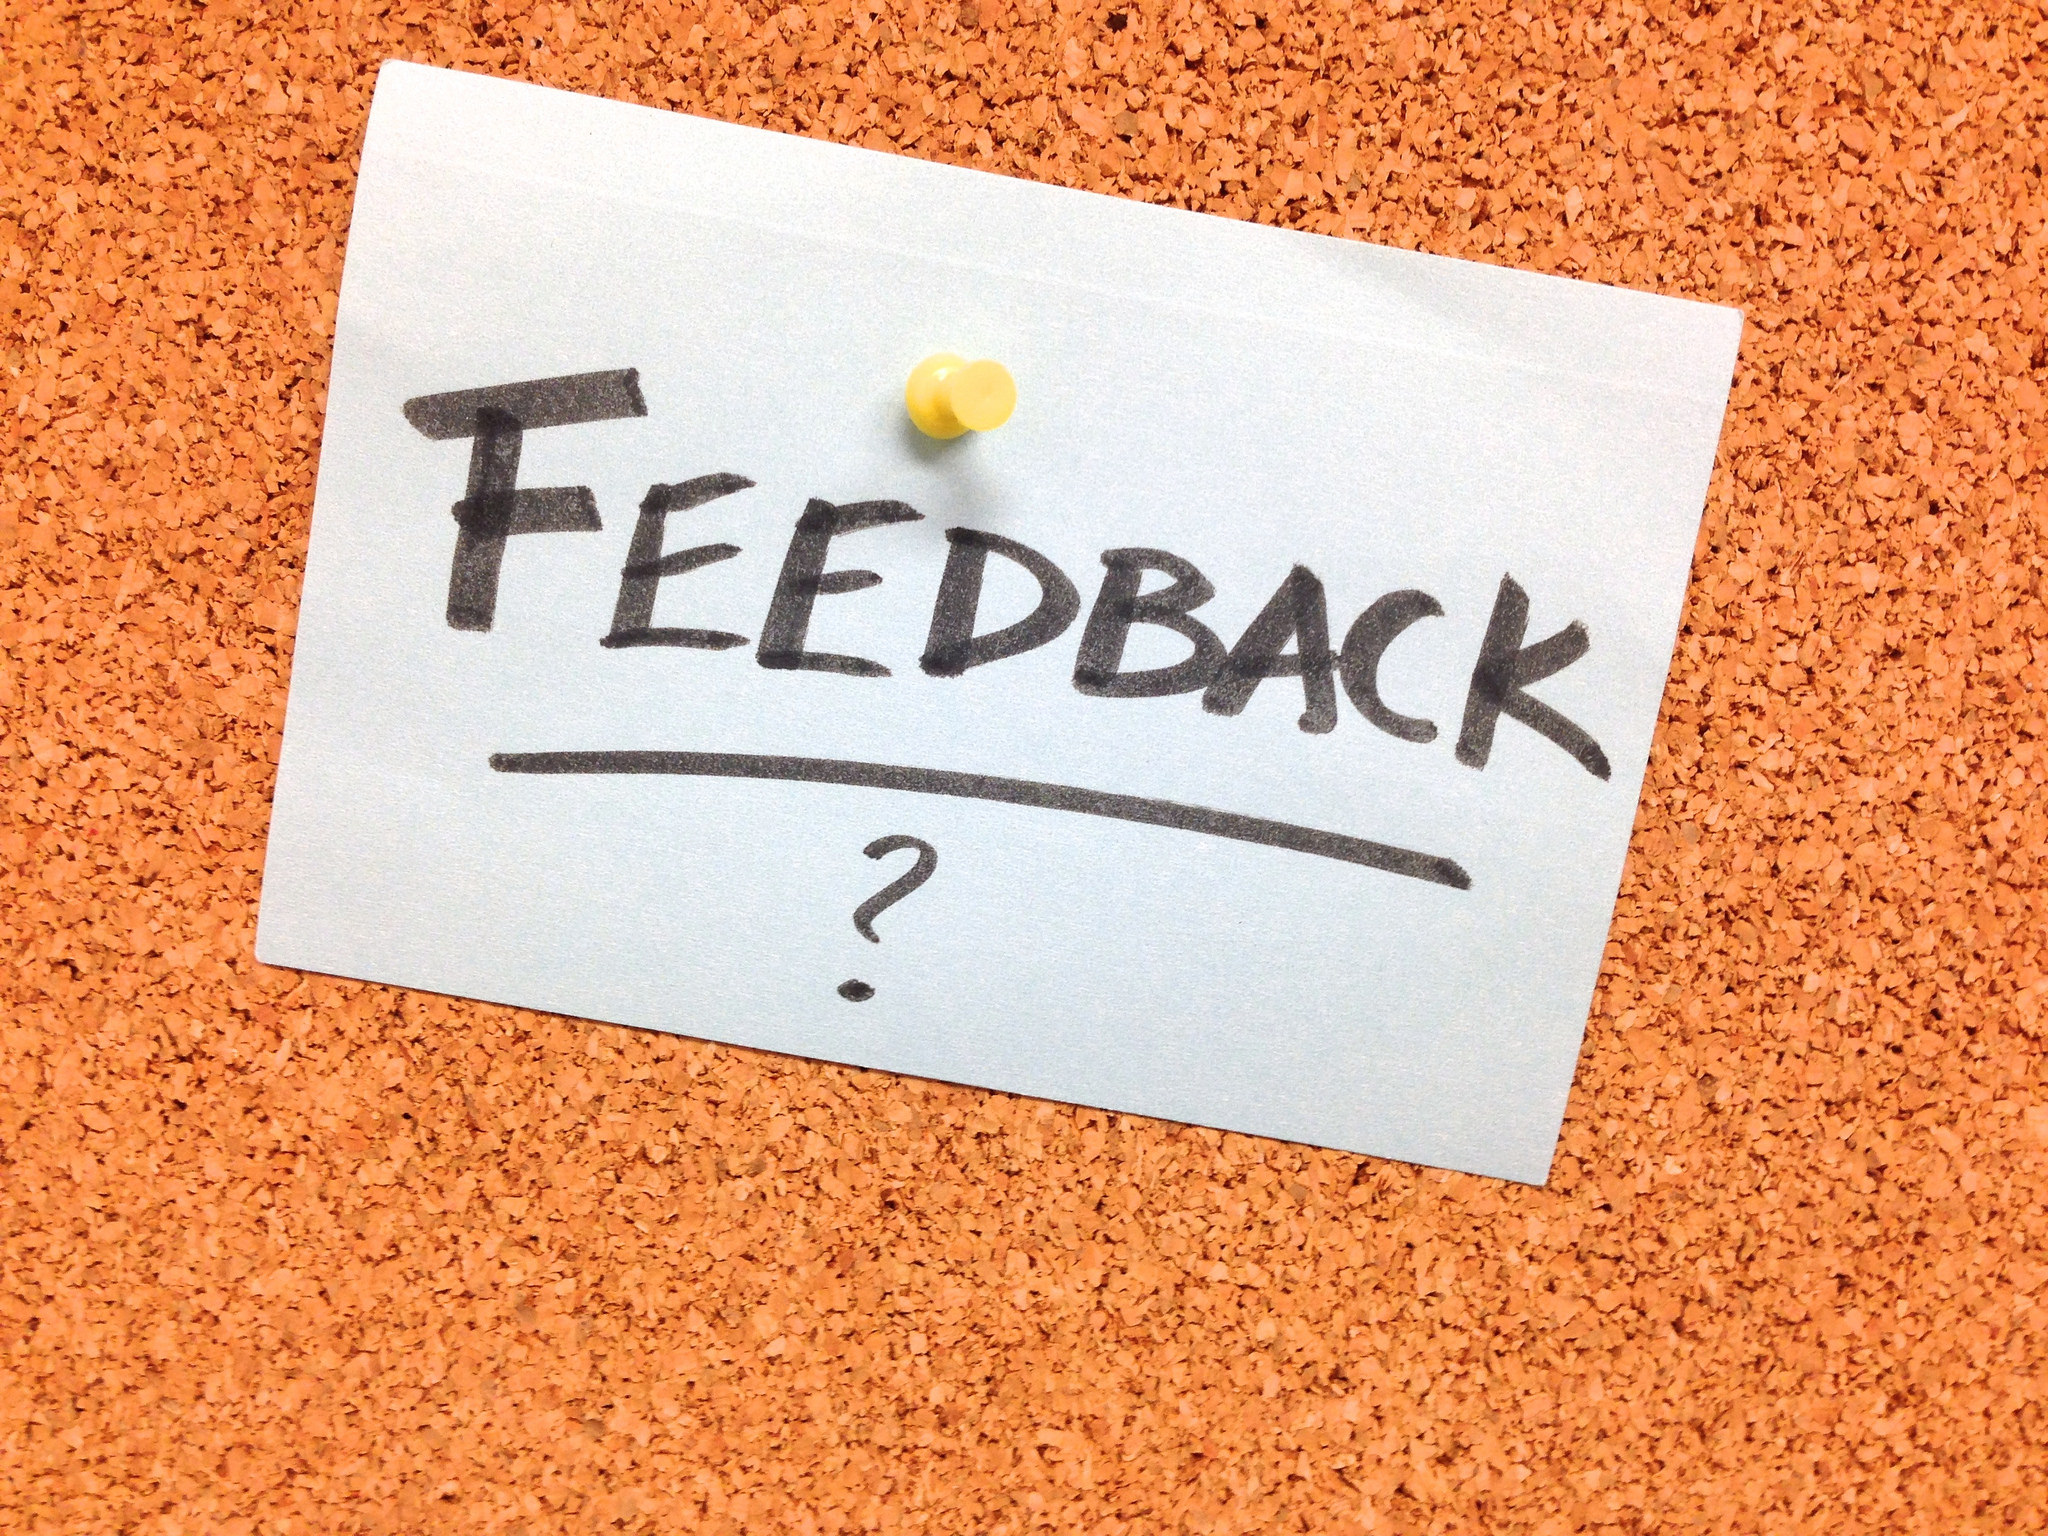 7 tips for a feedback makeover